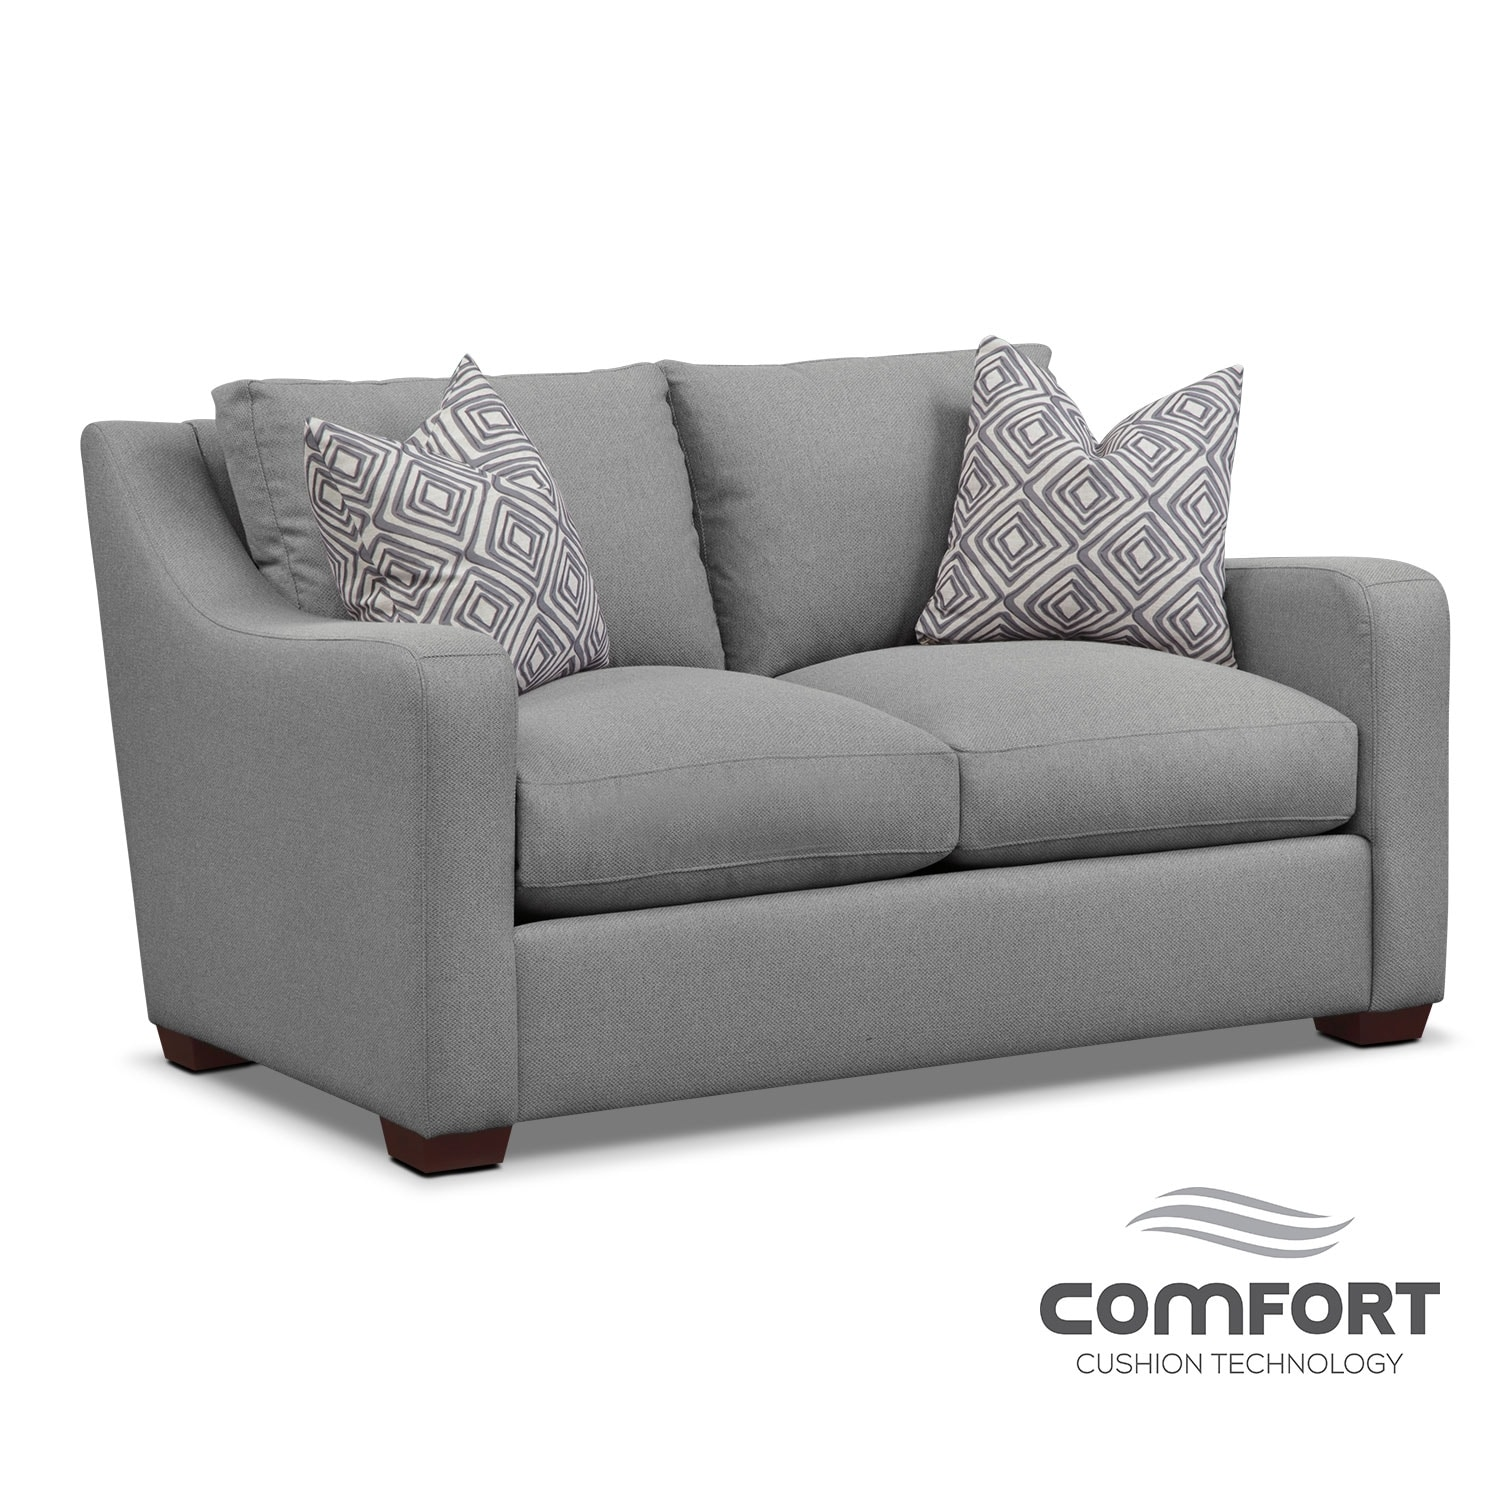 Living Room Furniture - Jules Comfort Loveseat- Gray